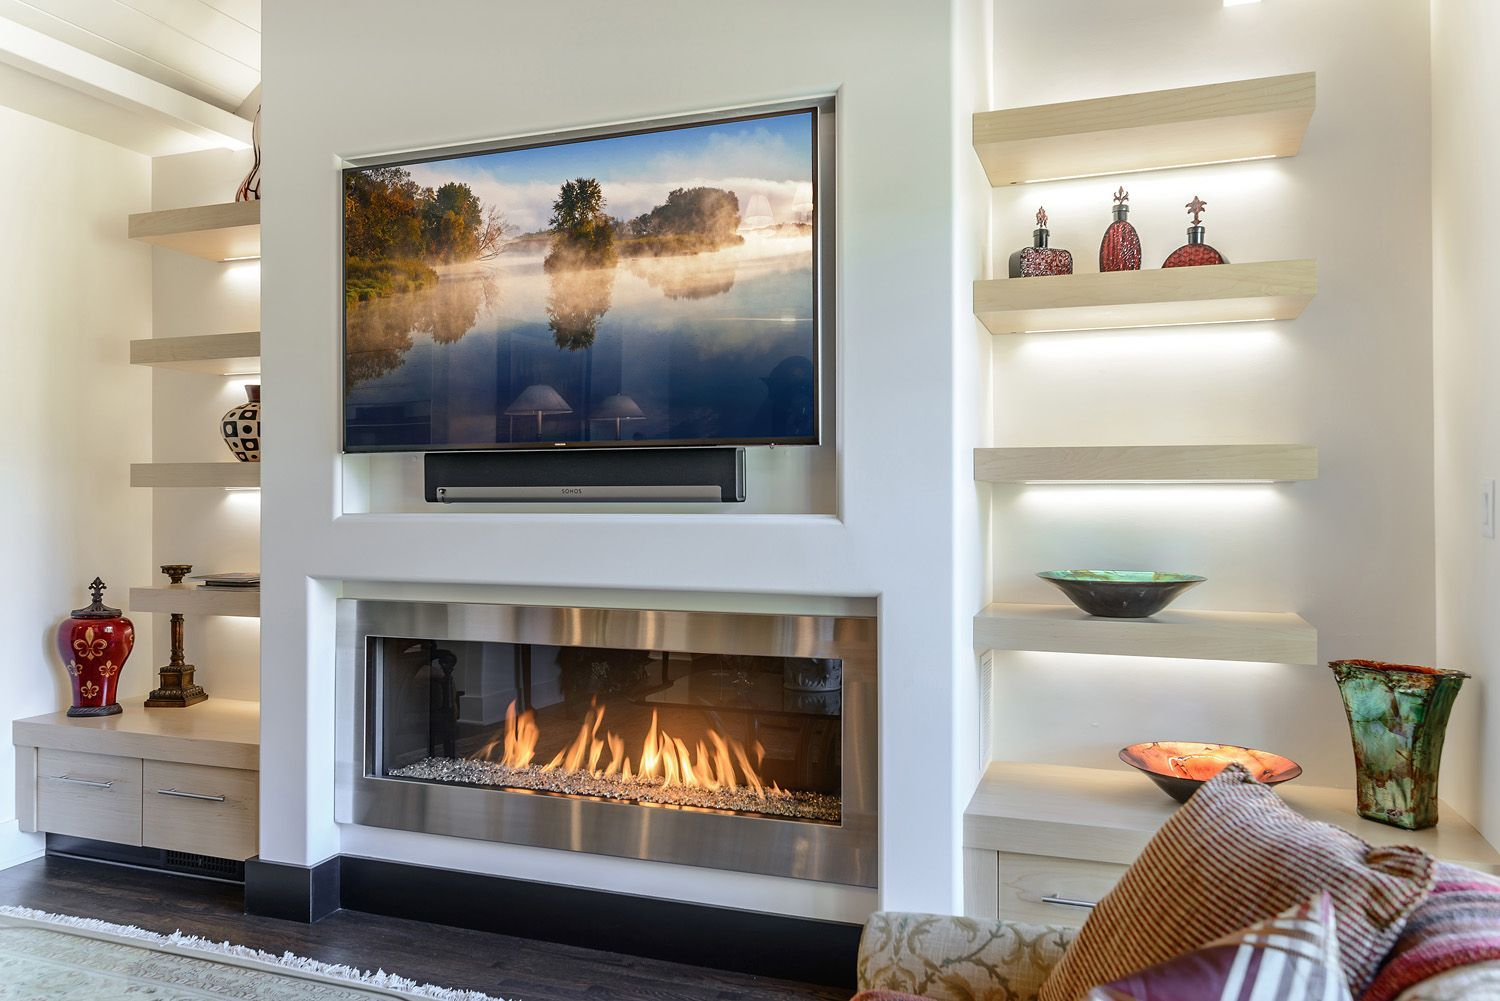 Simple Is The New Bold See Elegant Contemporary Gas Fireplaces Installed In Modern Homes European Ho Elegant Living Room Fireplace Design Fireplace Remodel